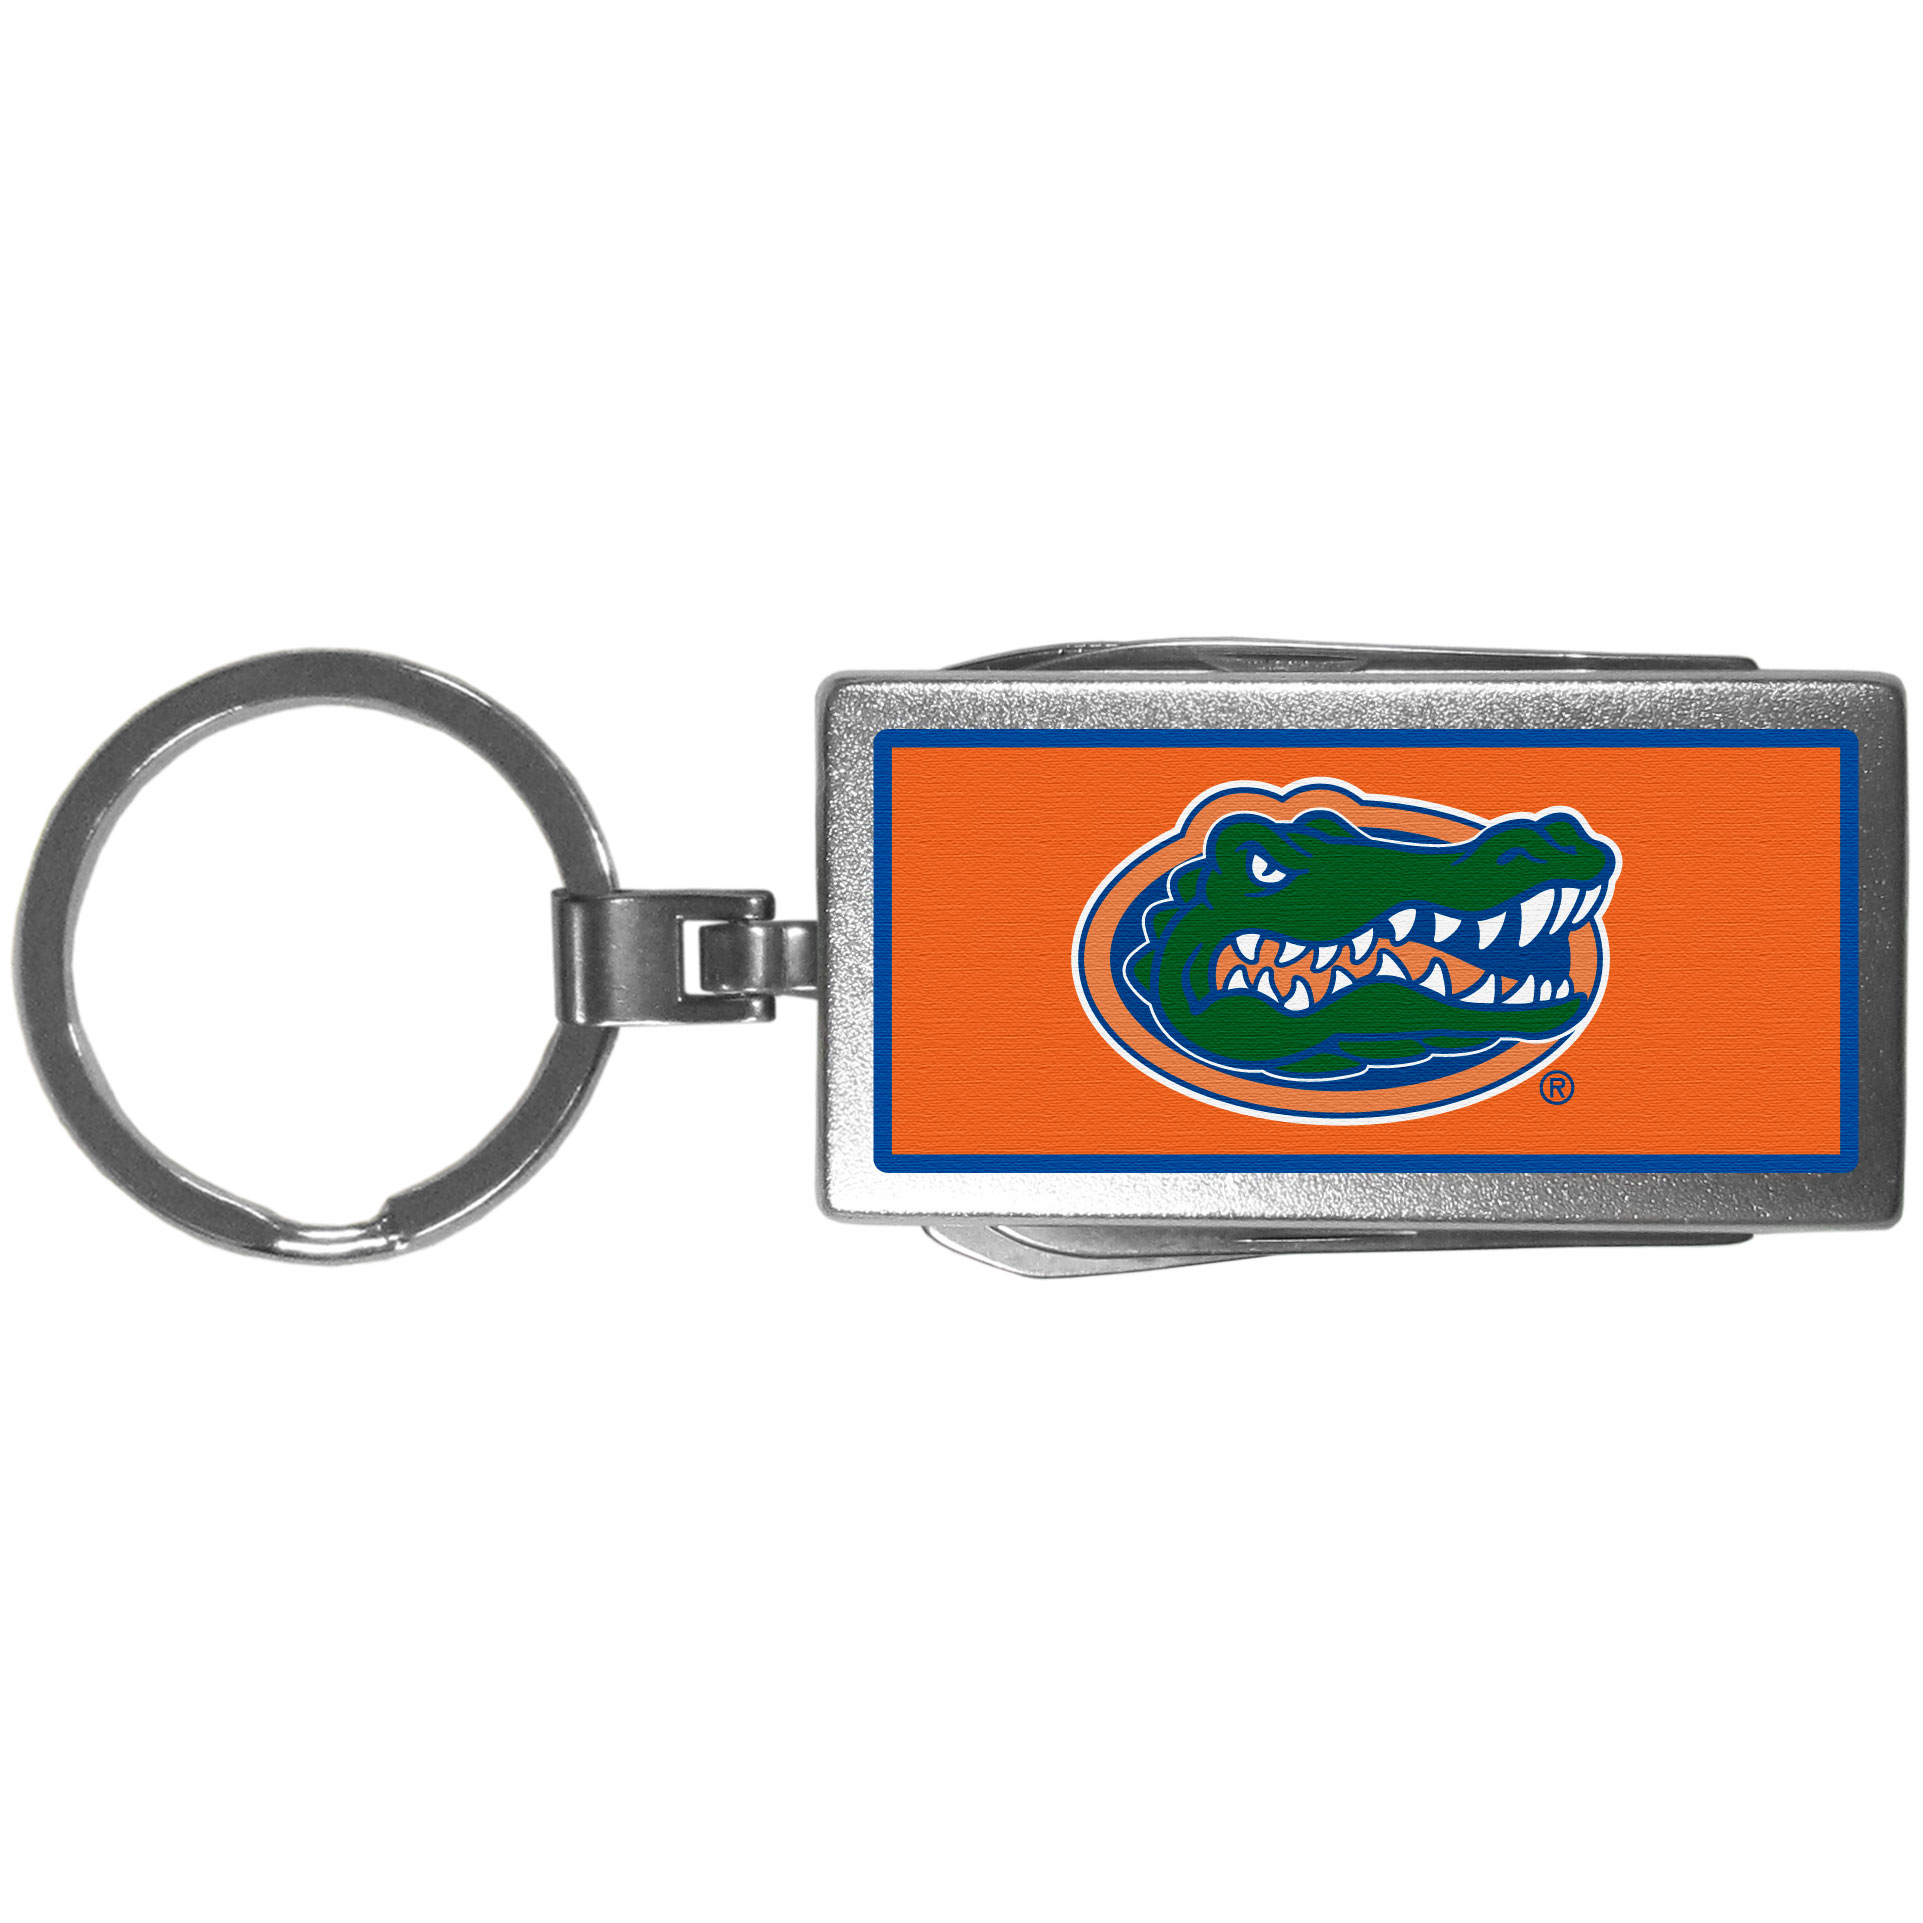 Florida Gators Multi-tool Key Chain, Logo - Be the hero at the tailgate, camping, or on a Friday night with your Florida Gators Multi-Tool Keychain which comes complete with bottle opener, scissors, knife, nail file and screw driver. Be it opening a package or a beverage Siskiyou's Multi-Tool Keychain goes wherever your keys do. The keychain hangs at 4 inches long when closed.